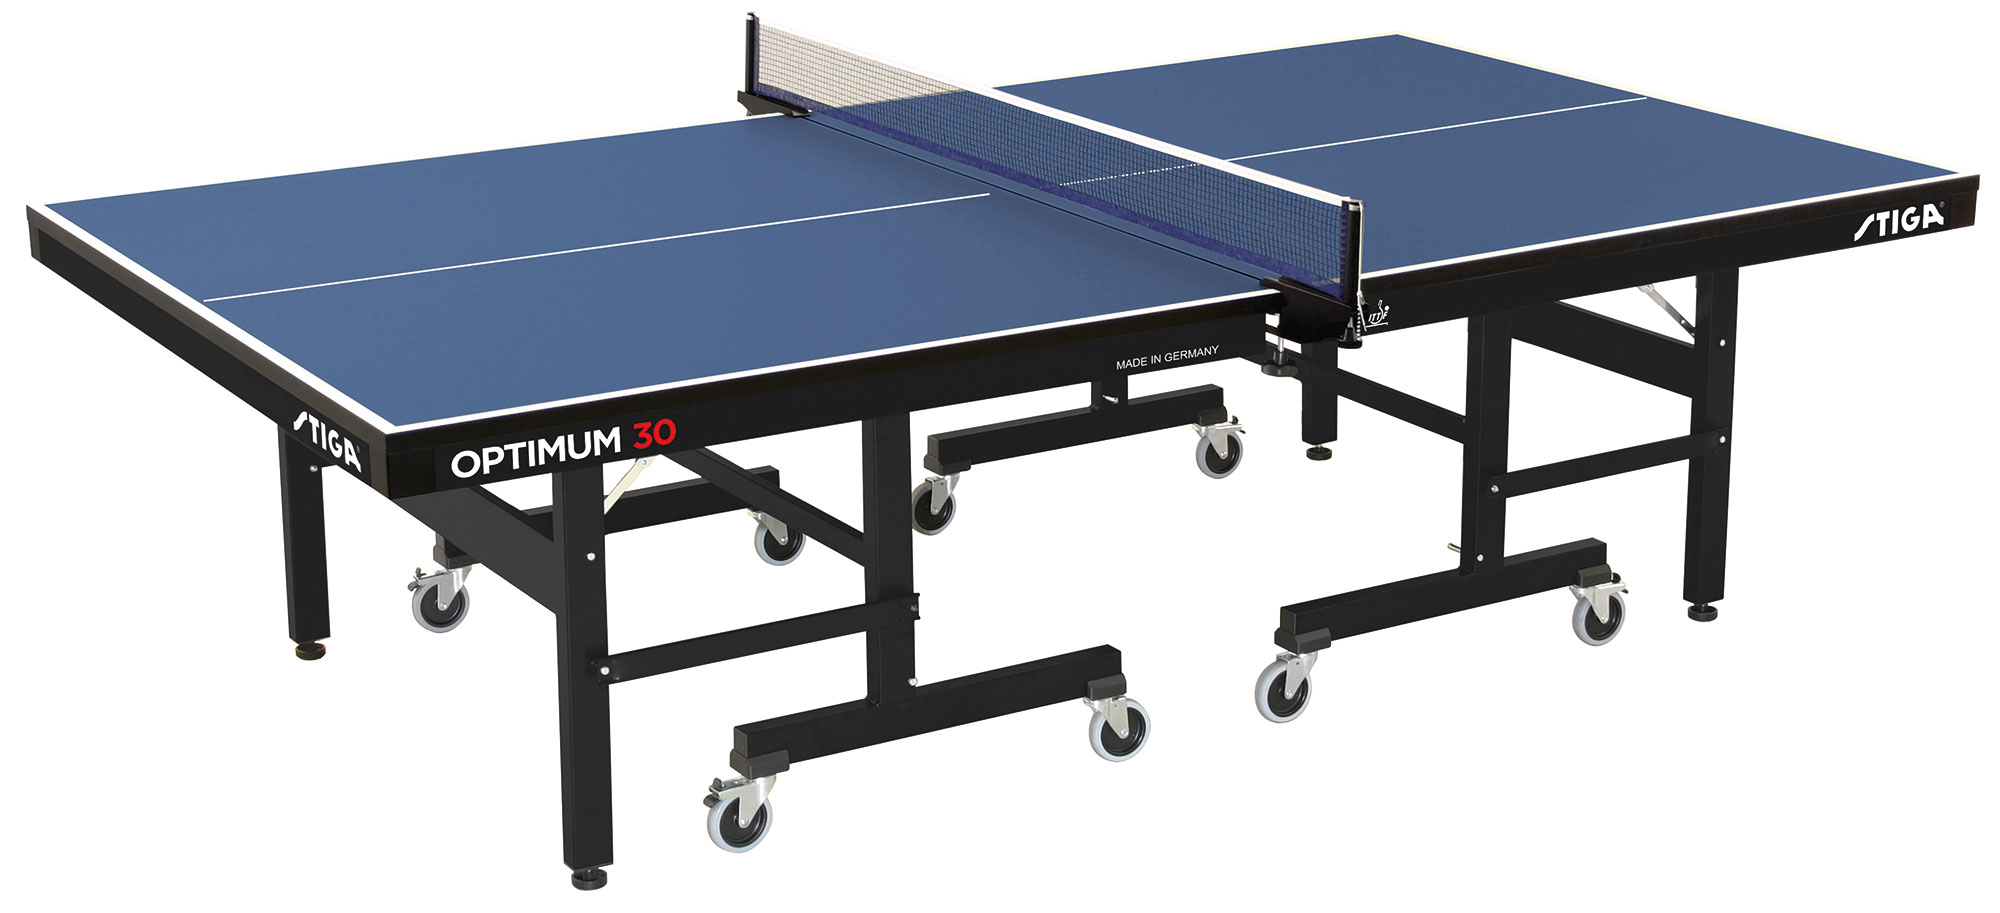 thorntons table tennistable tennis table stiga optimum 30mm table blue. Black Bedroom Furniture Sets. Home Design Ideas